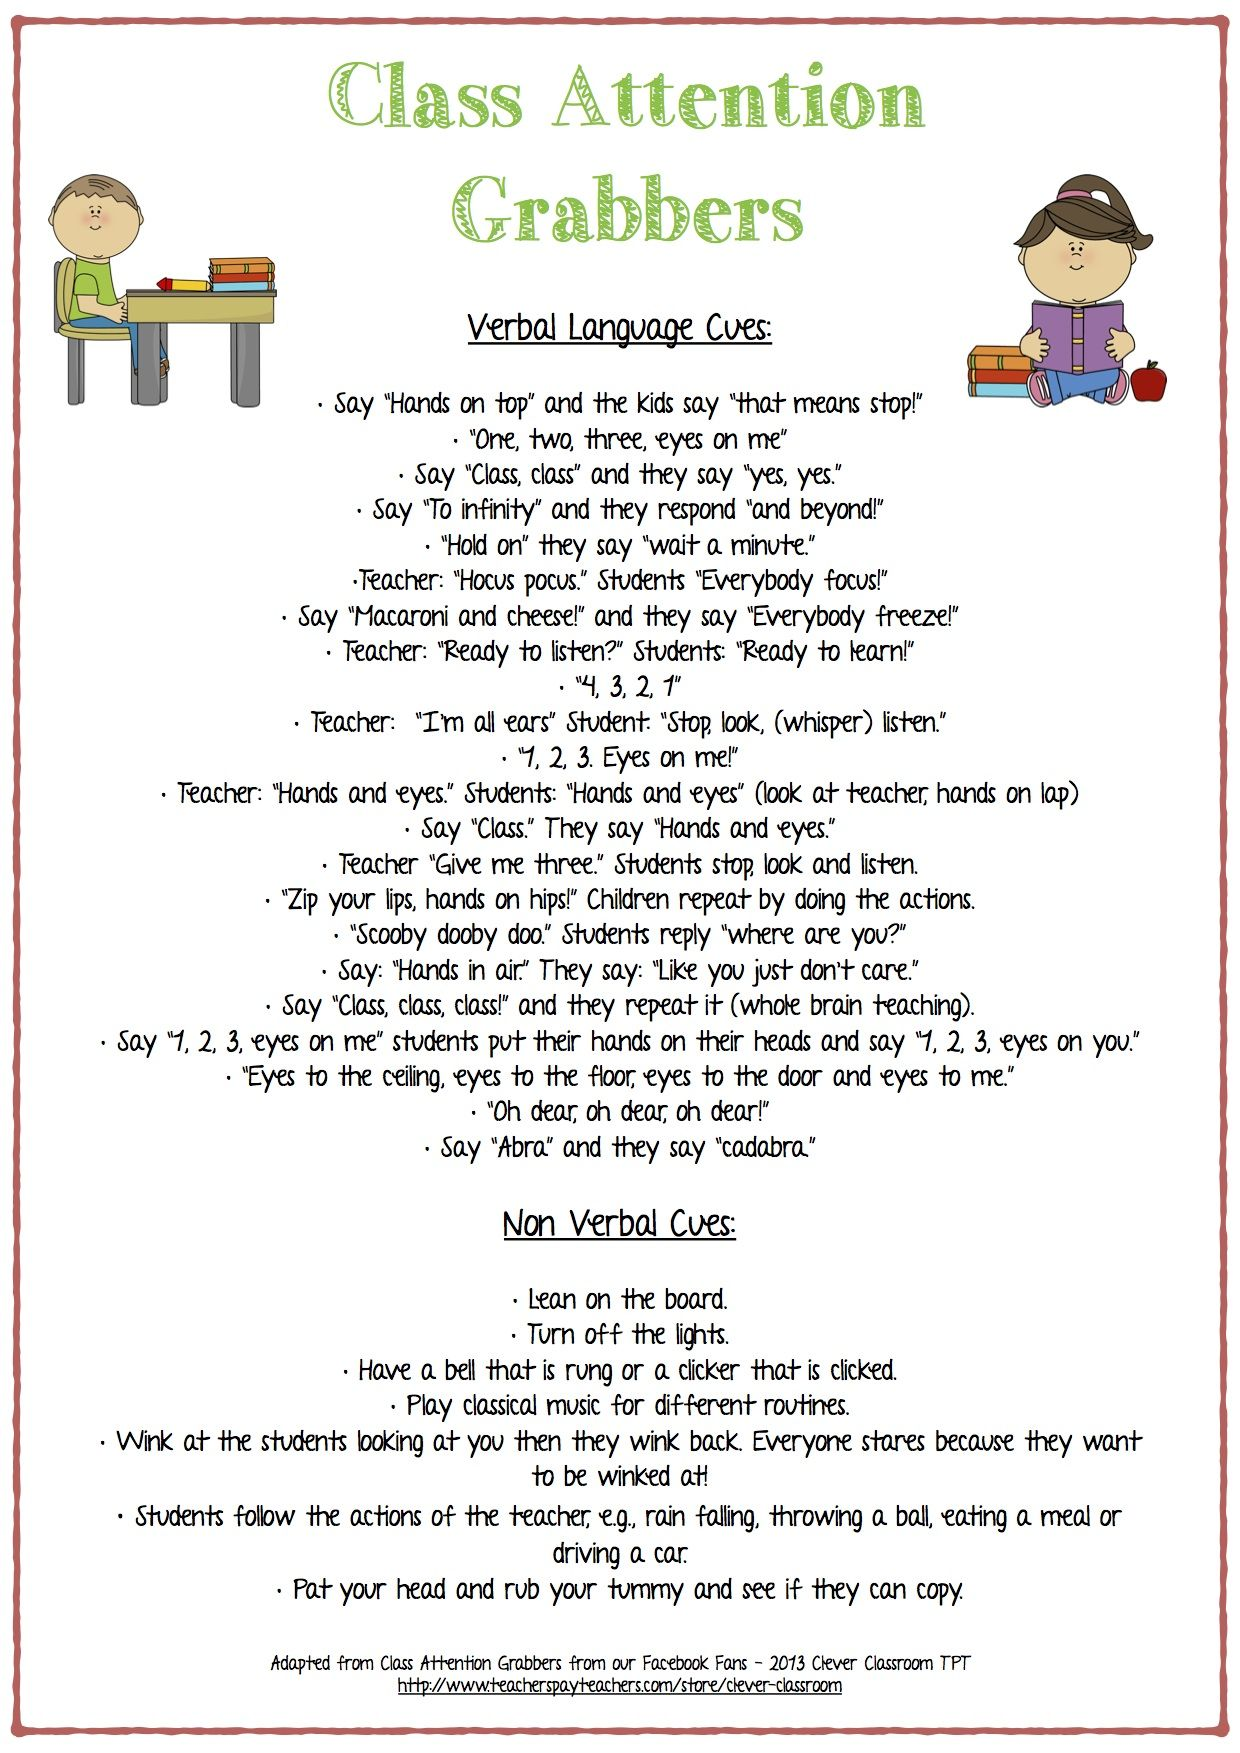 Class Attention Grabbers - Verbal and Non-Verbal